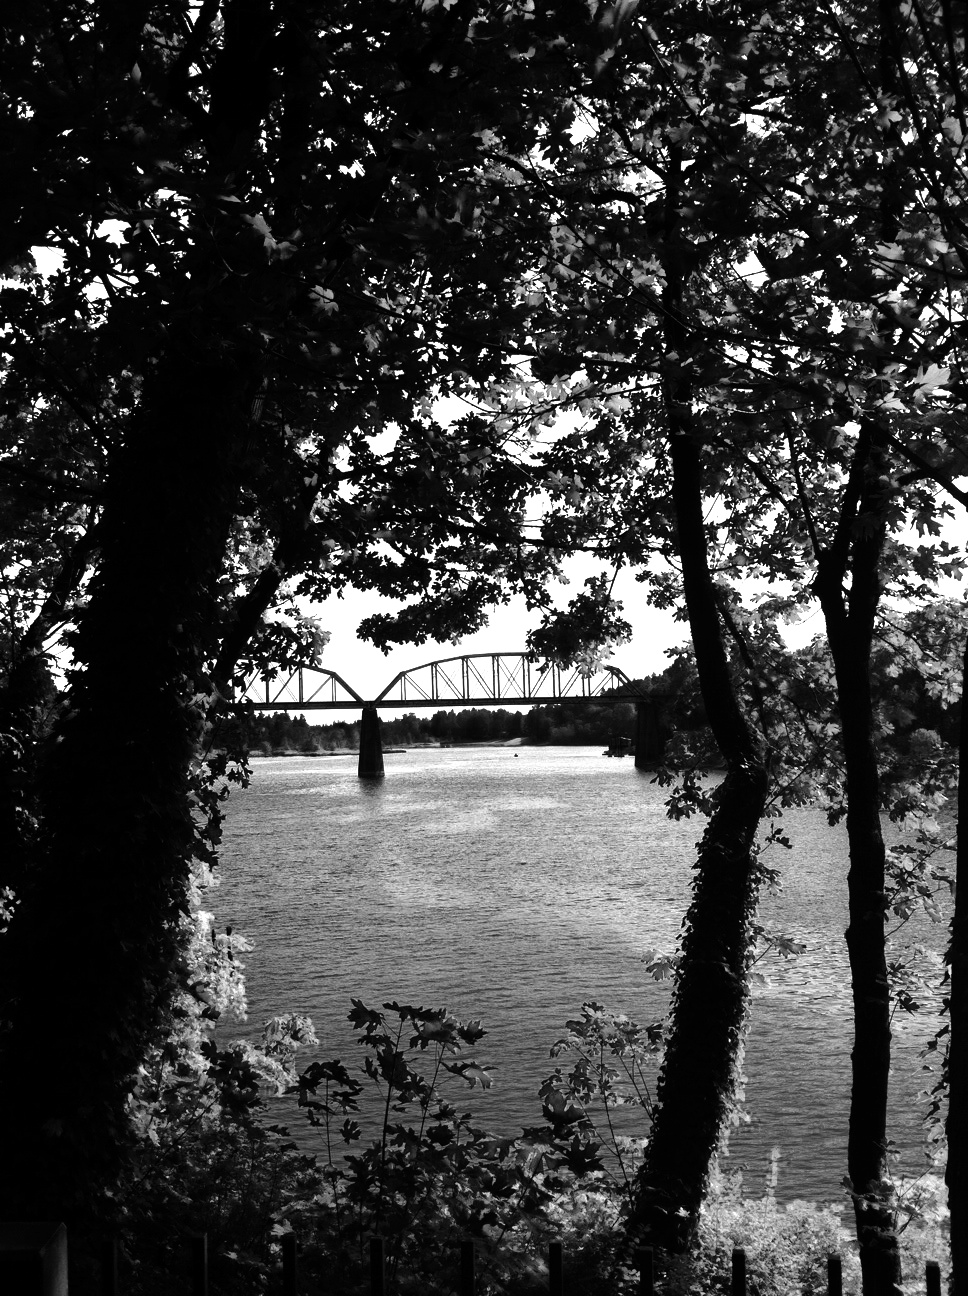 Karens LO River Photo 1 B&W for History Page